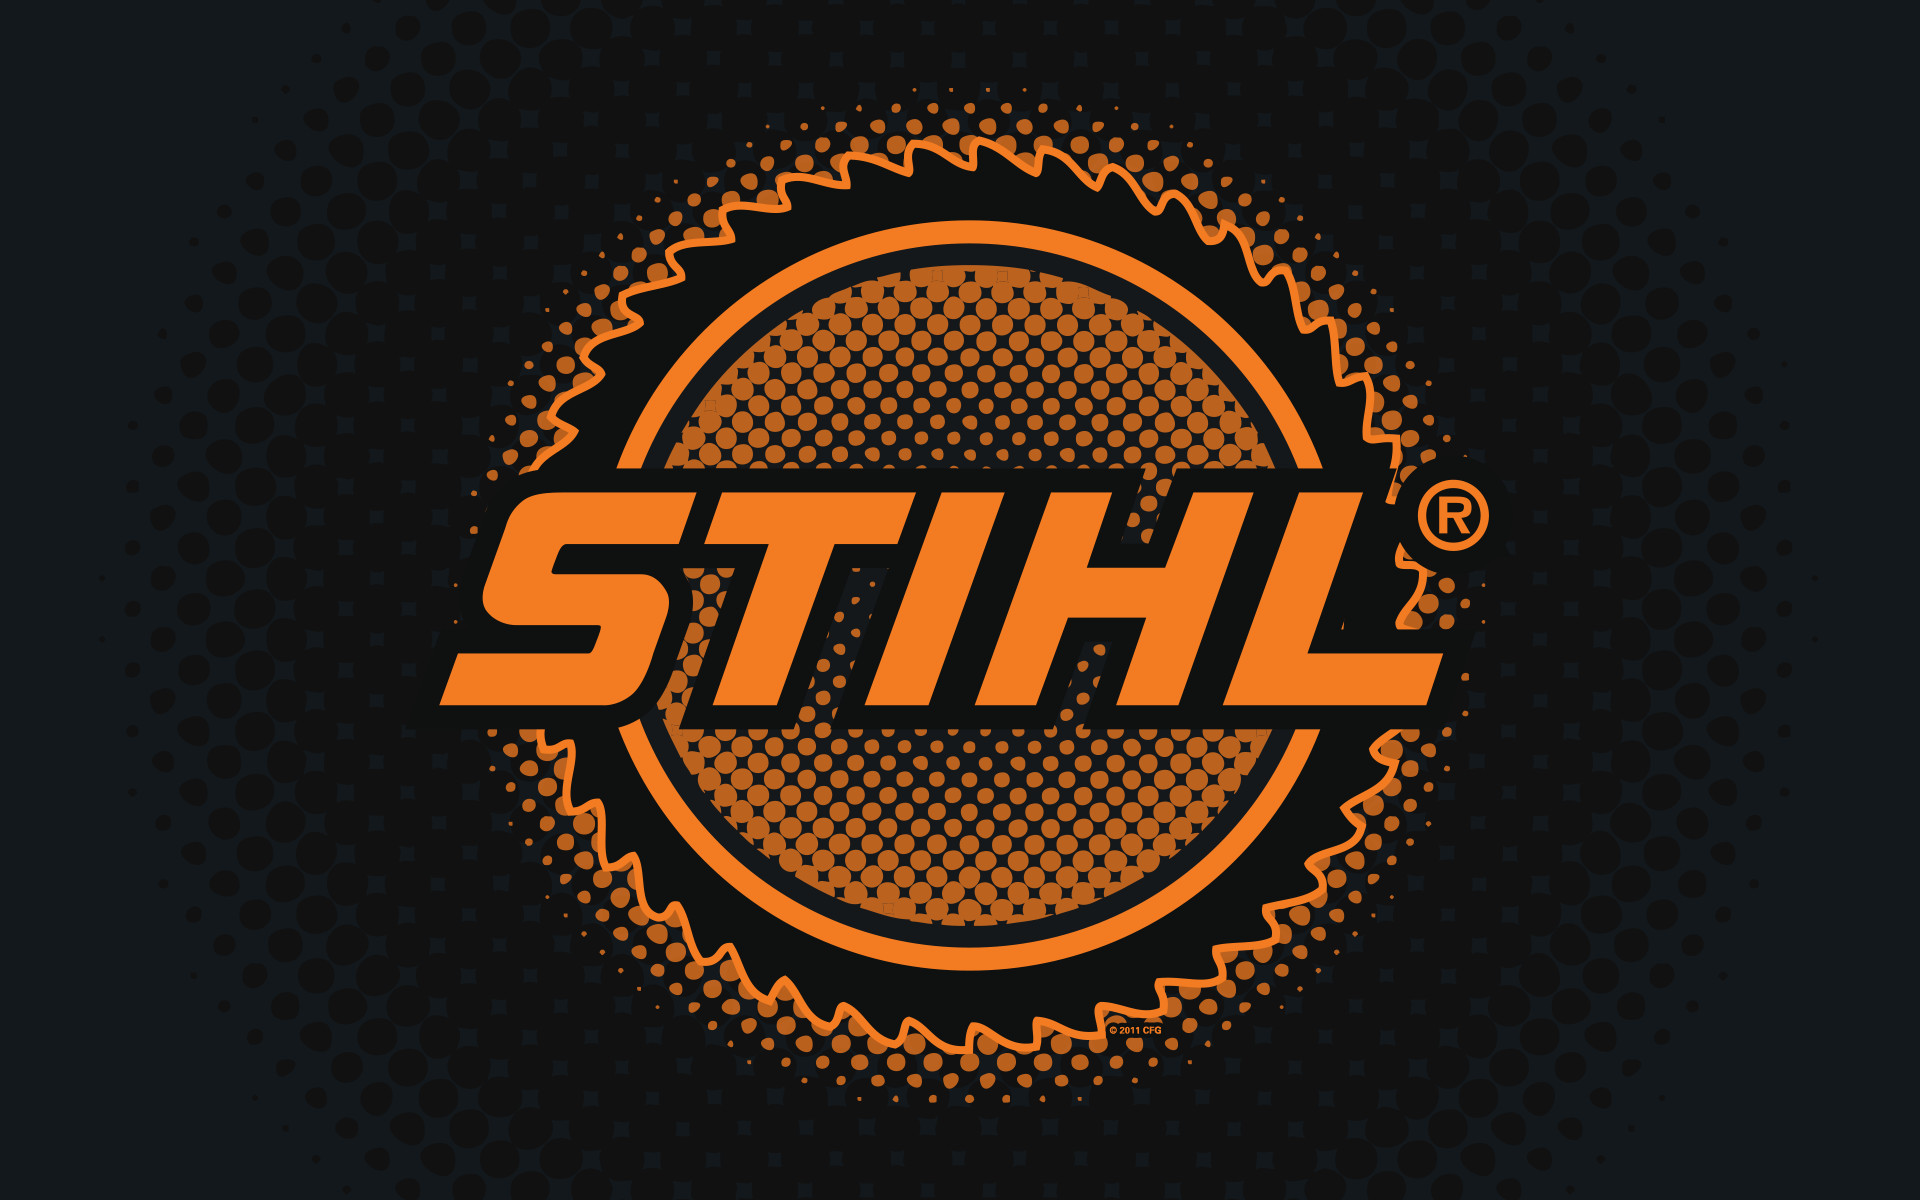 27950 stihl wallpaper backgrounds in hd 1920x1200